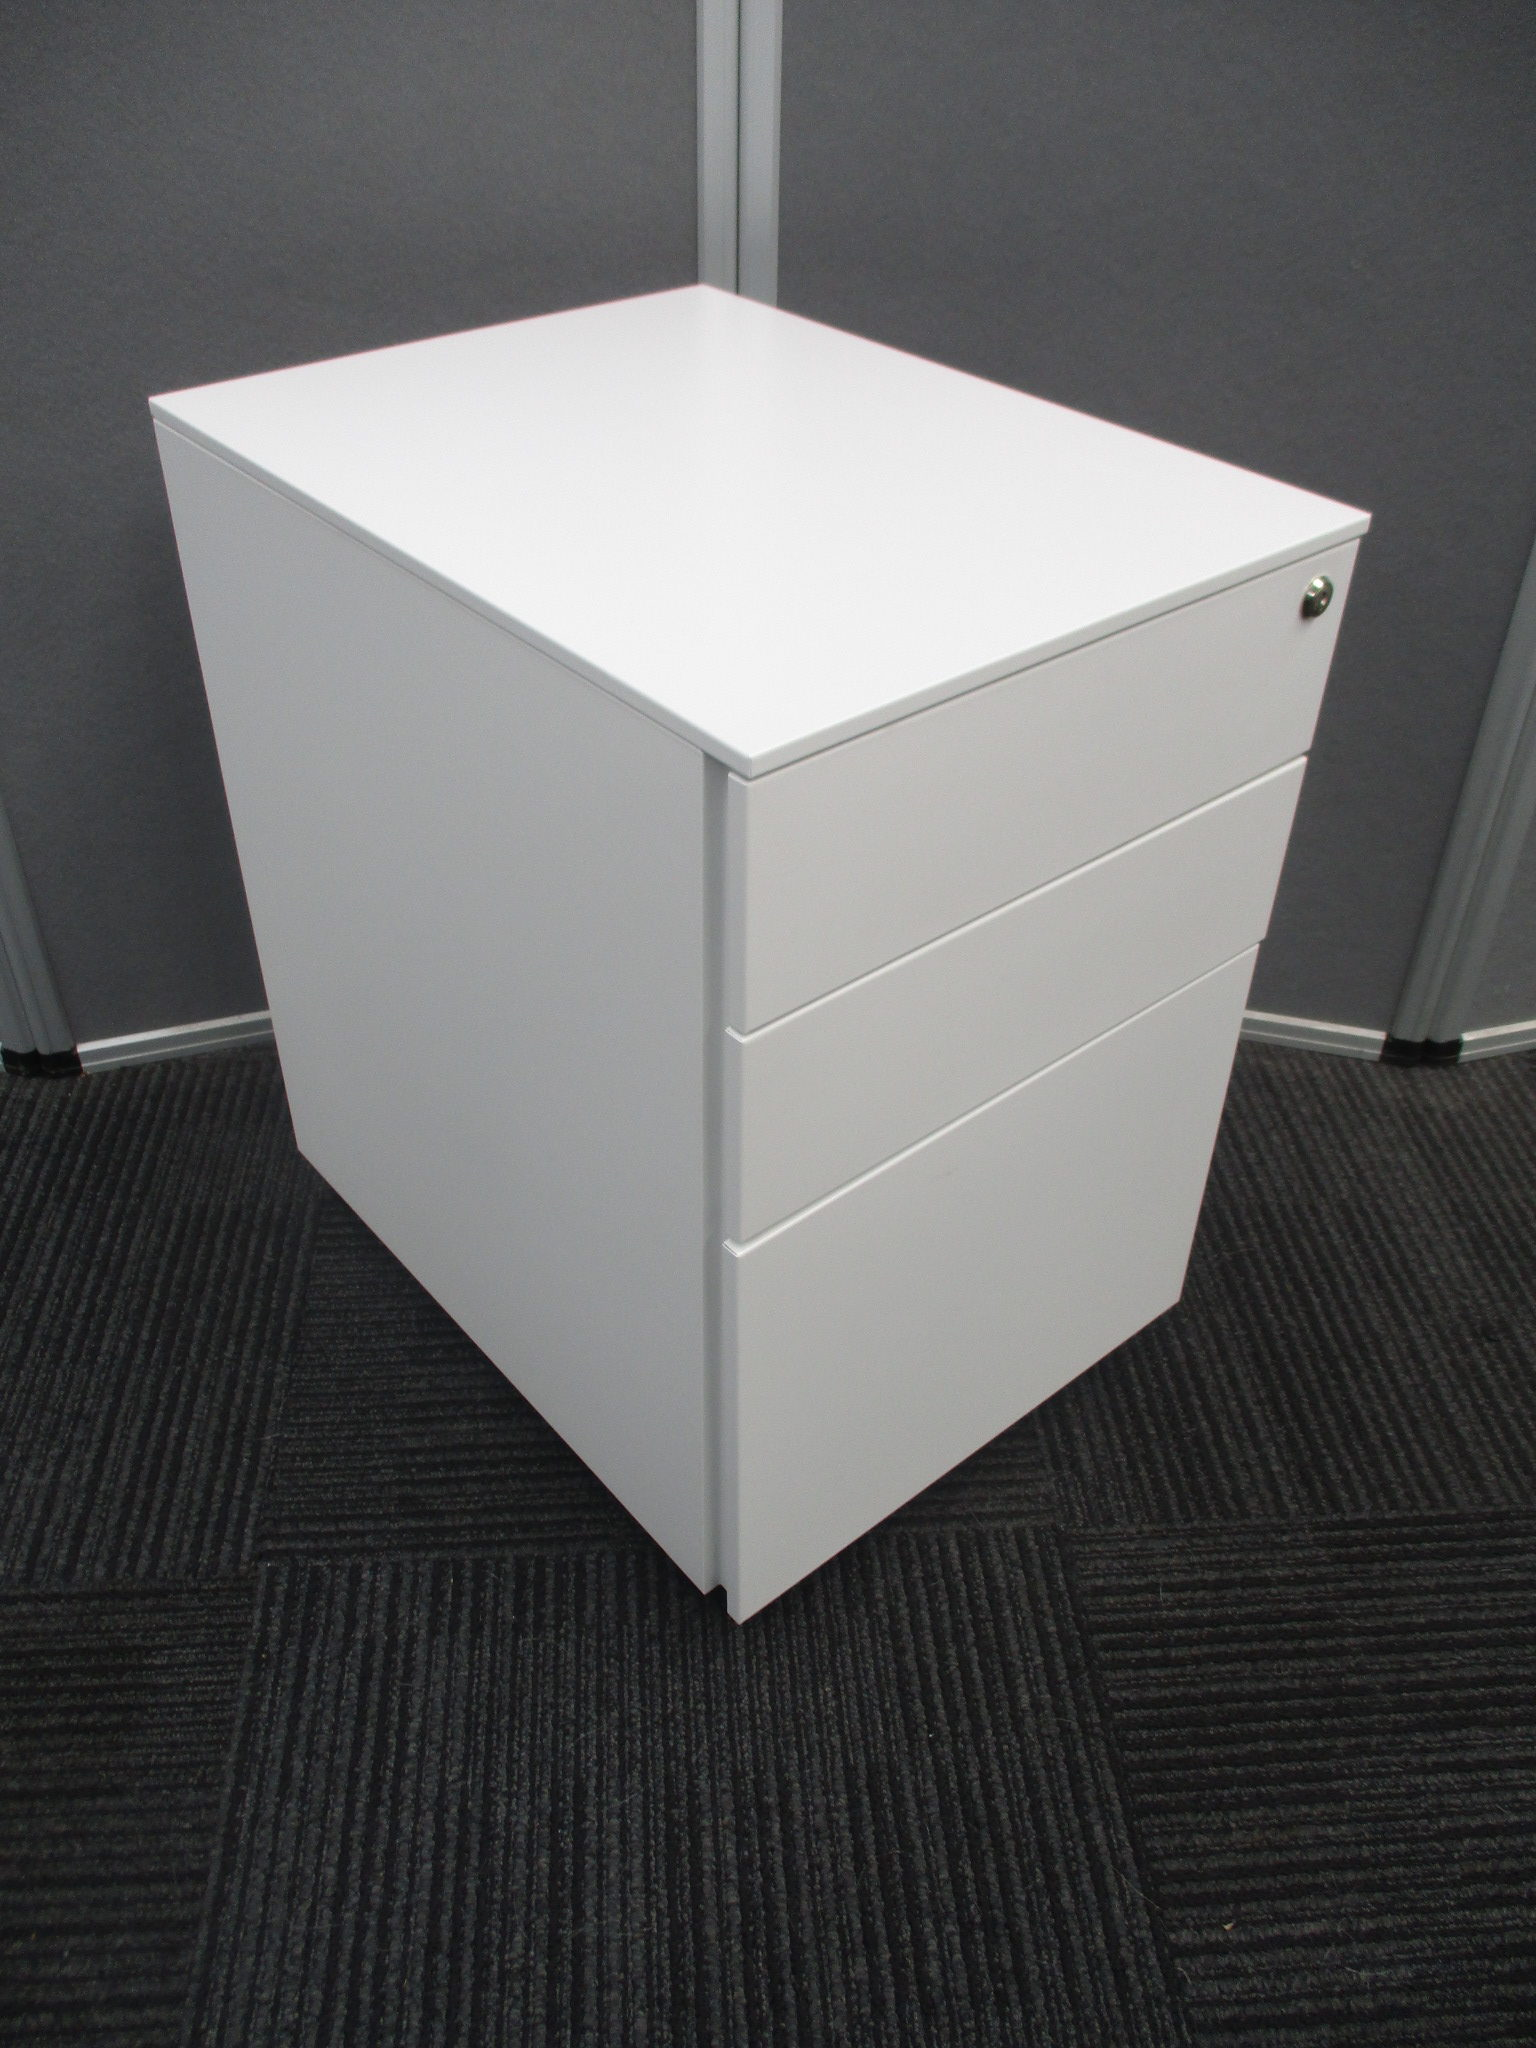 New Presto Slimline White Steel 3 Drawer Mobile Pedestals $220